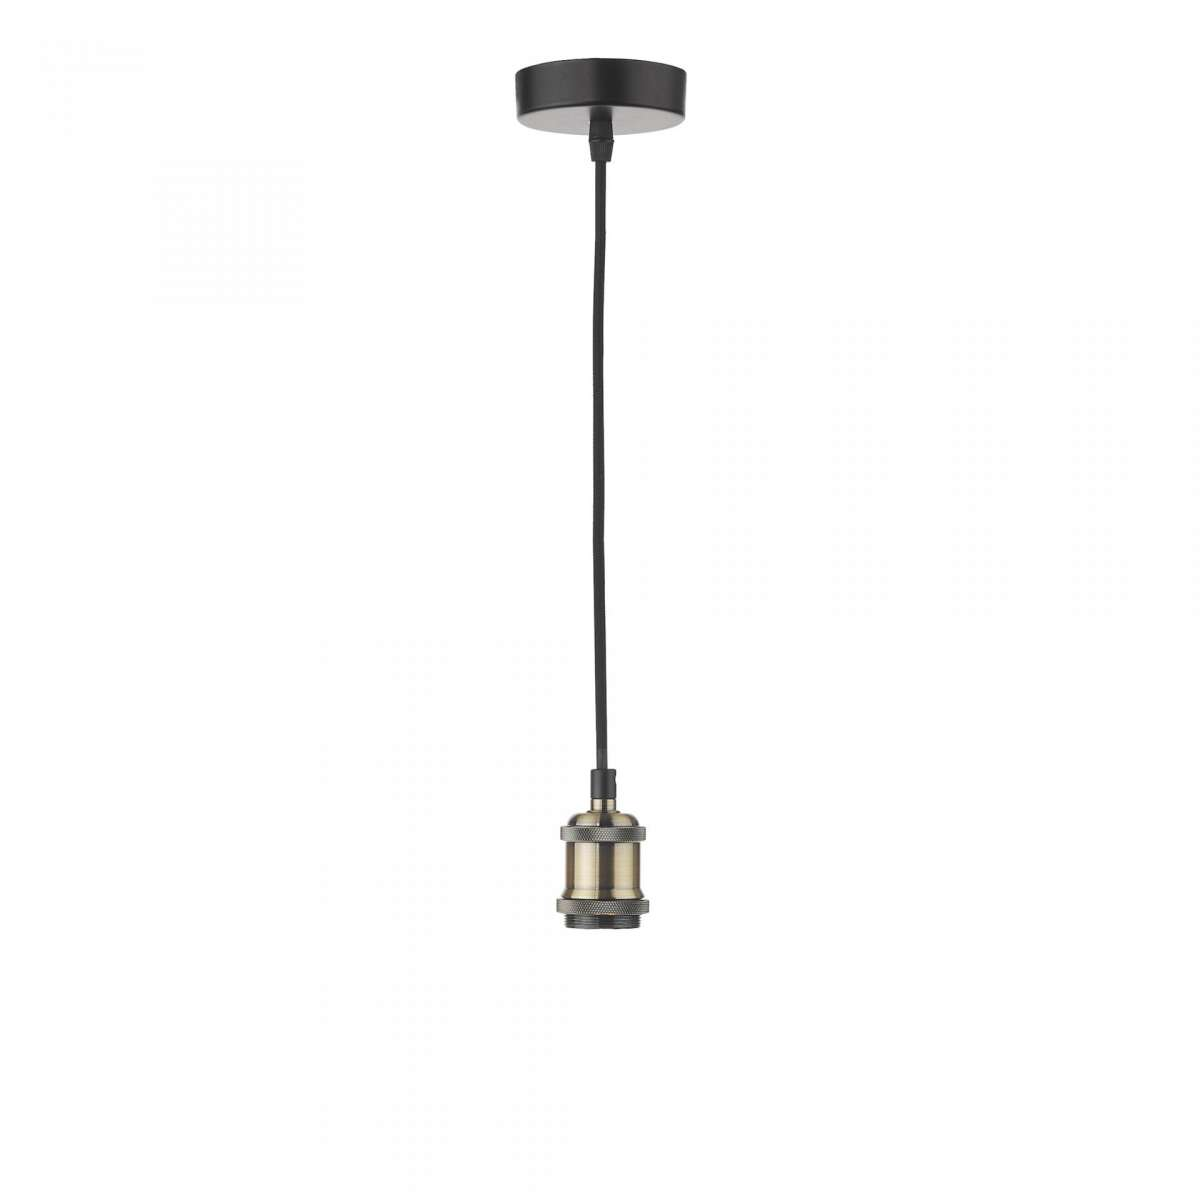 Dar Lighting WAC0175 Waco Single E27 Suspension Antique Brass Matt Black